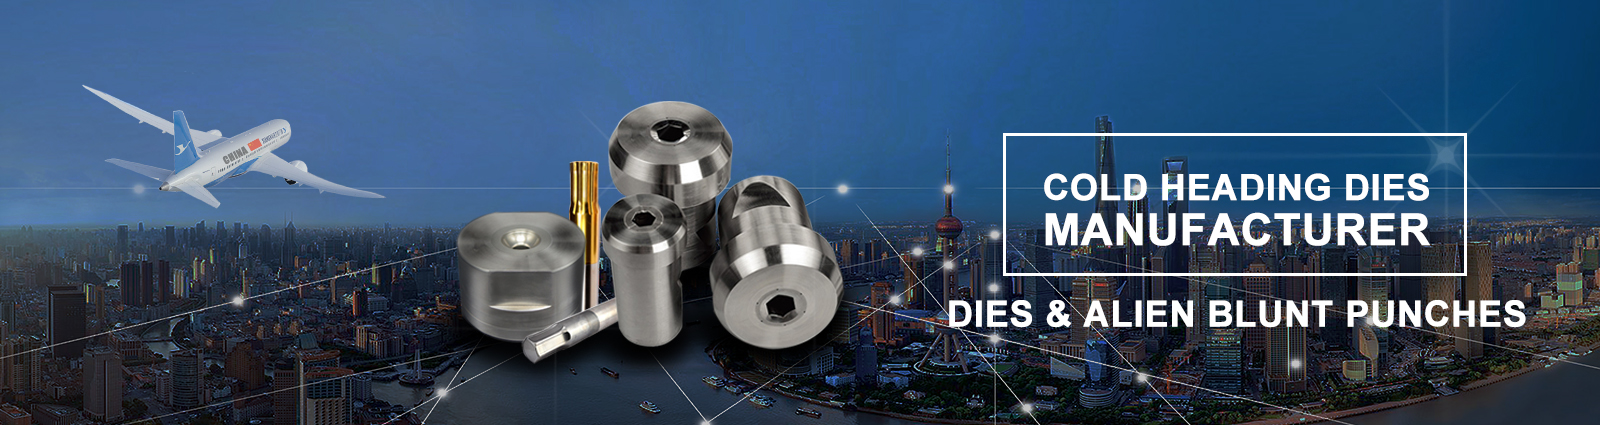 the picture is used for cold heading dies manufacturer's website